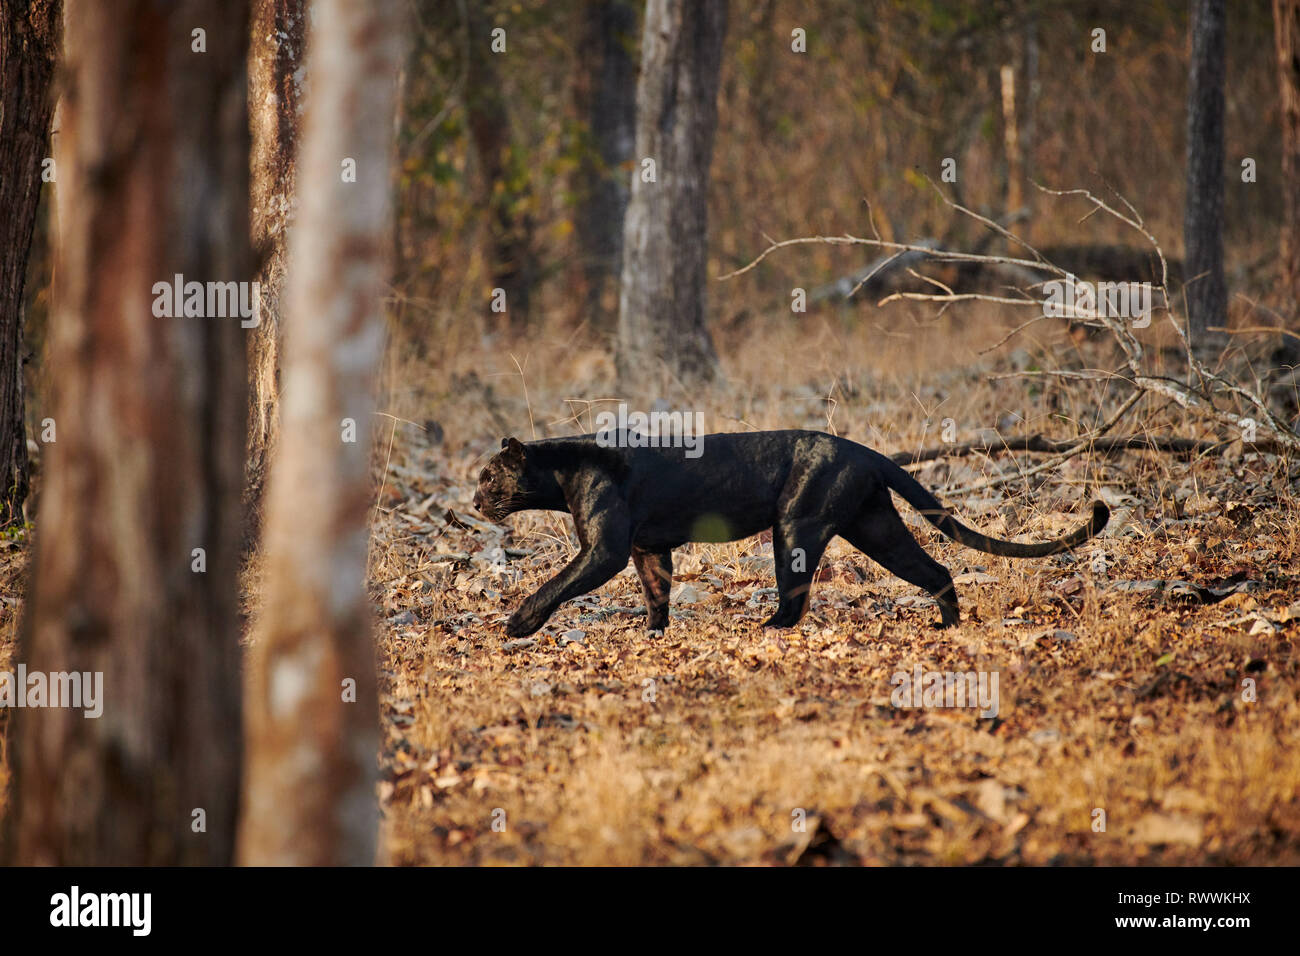 the elusive Black panther, melanistic  Indian leopard, (Panthera pardus fusca), Kabini, Nagarhole Tiger Reserve, Karnataka, India - Stock Image